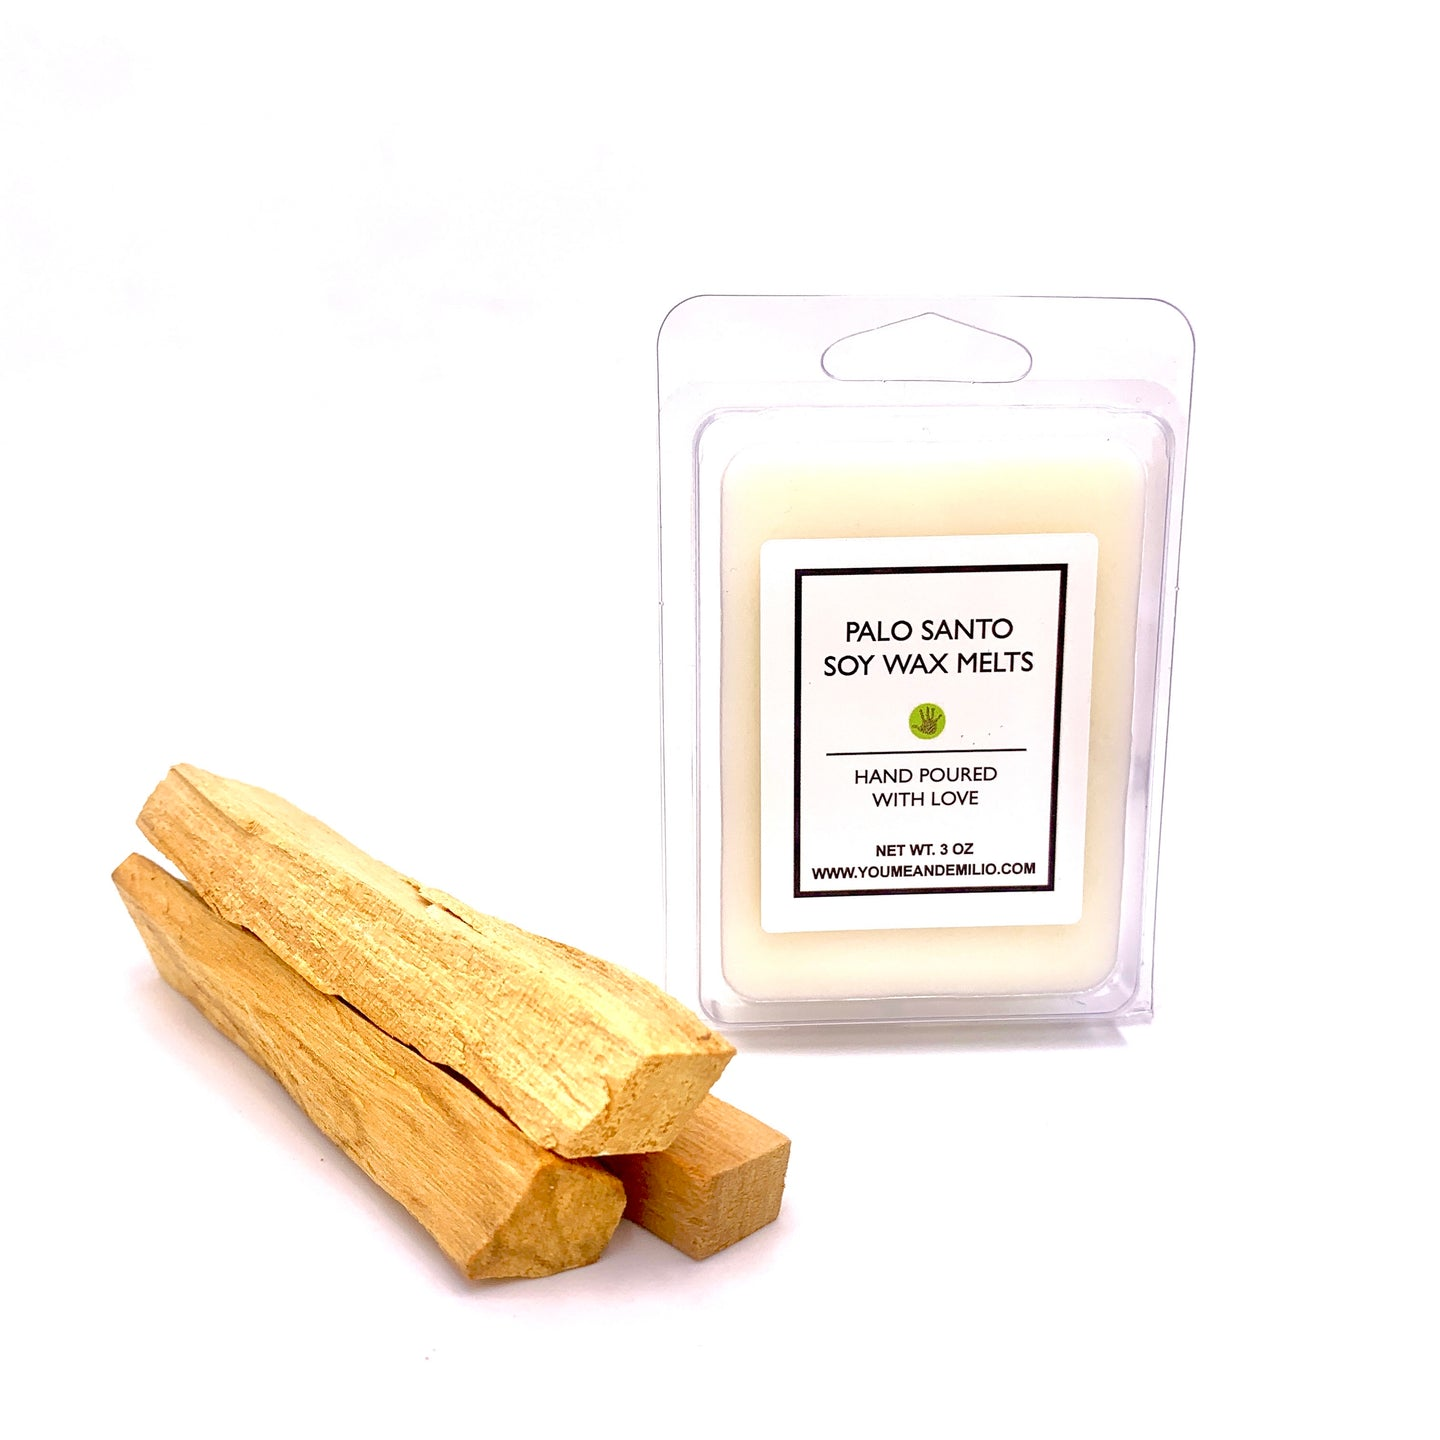 Palo Santo Soy Wax Melts